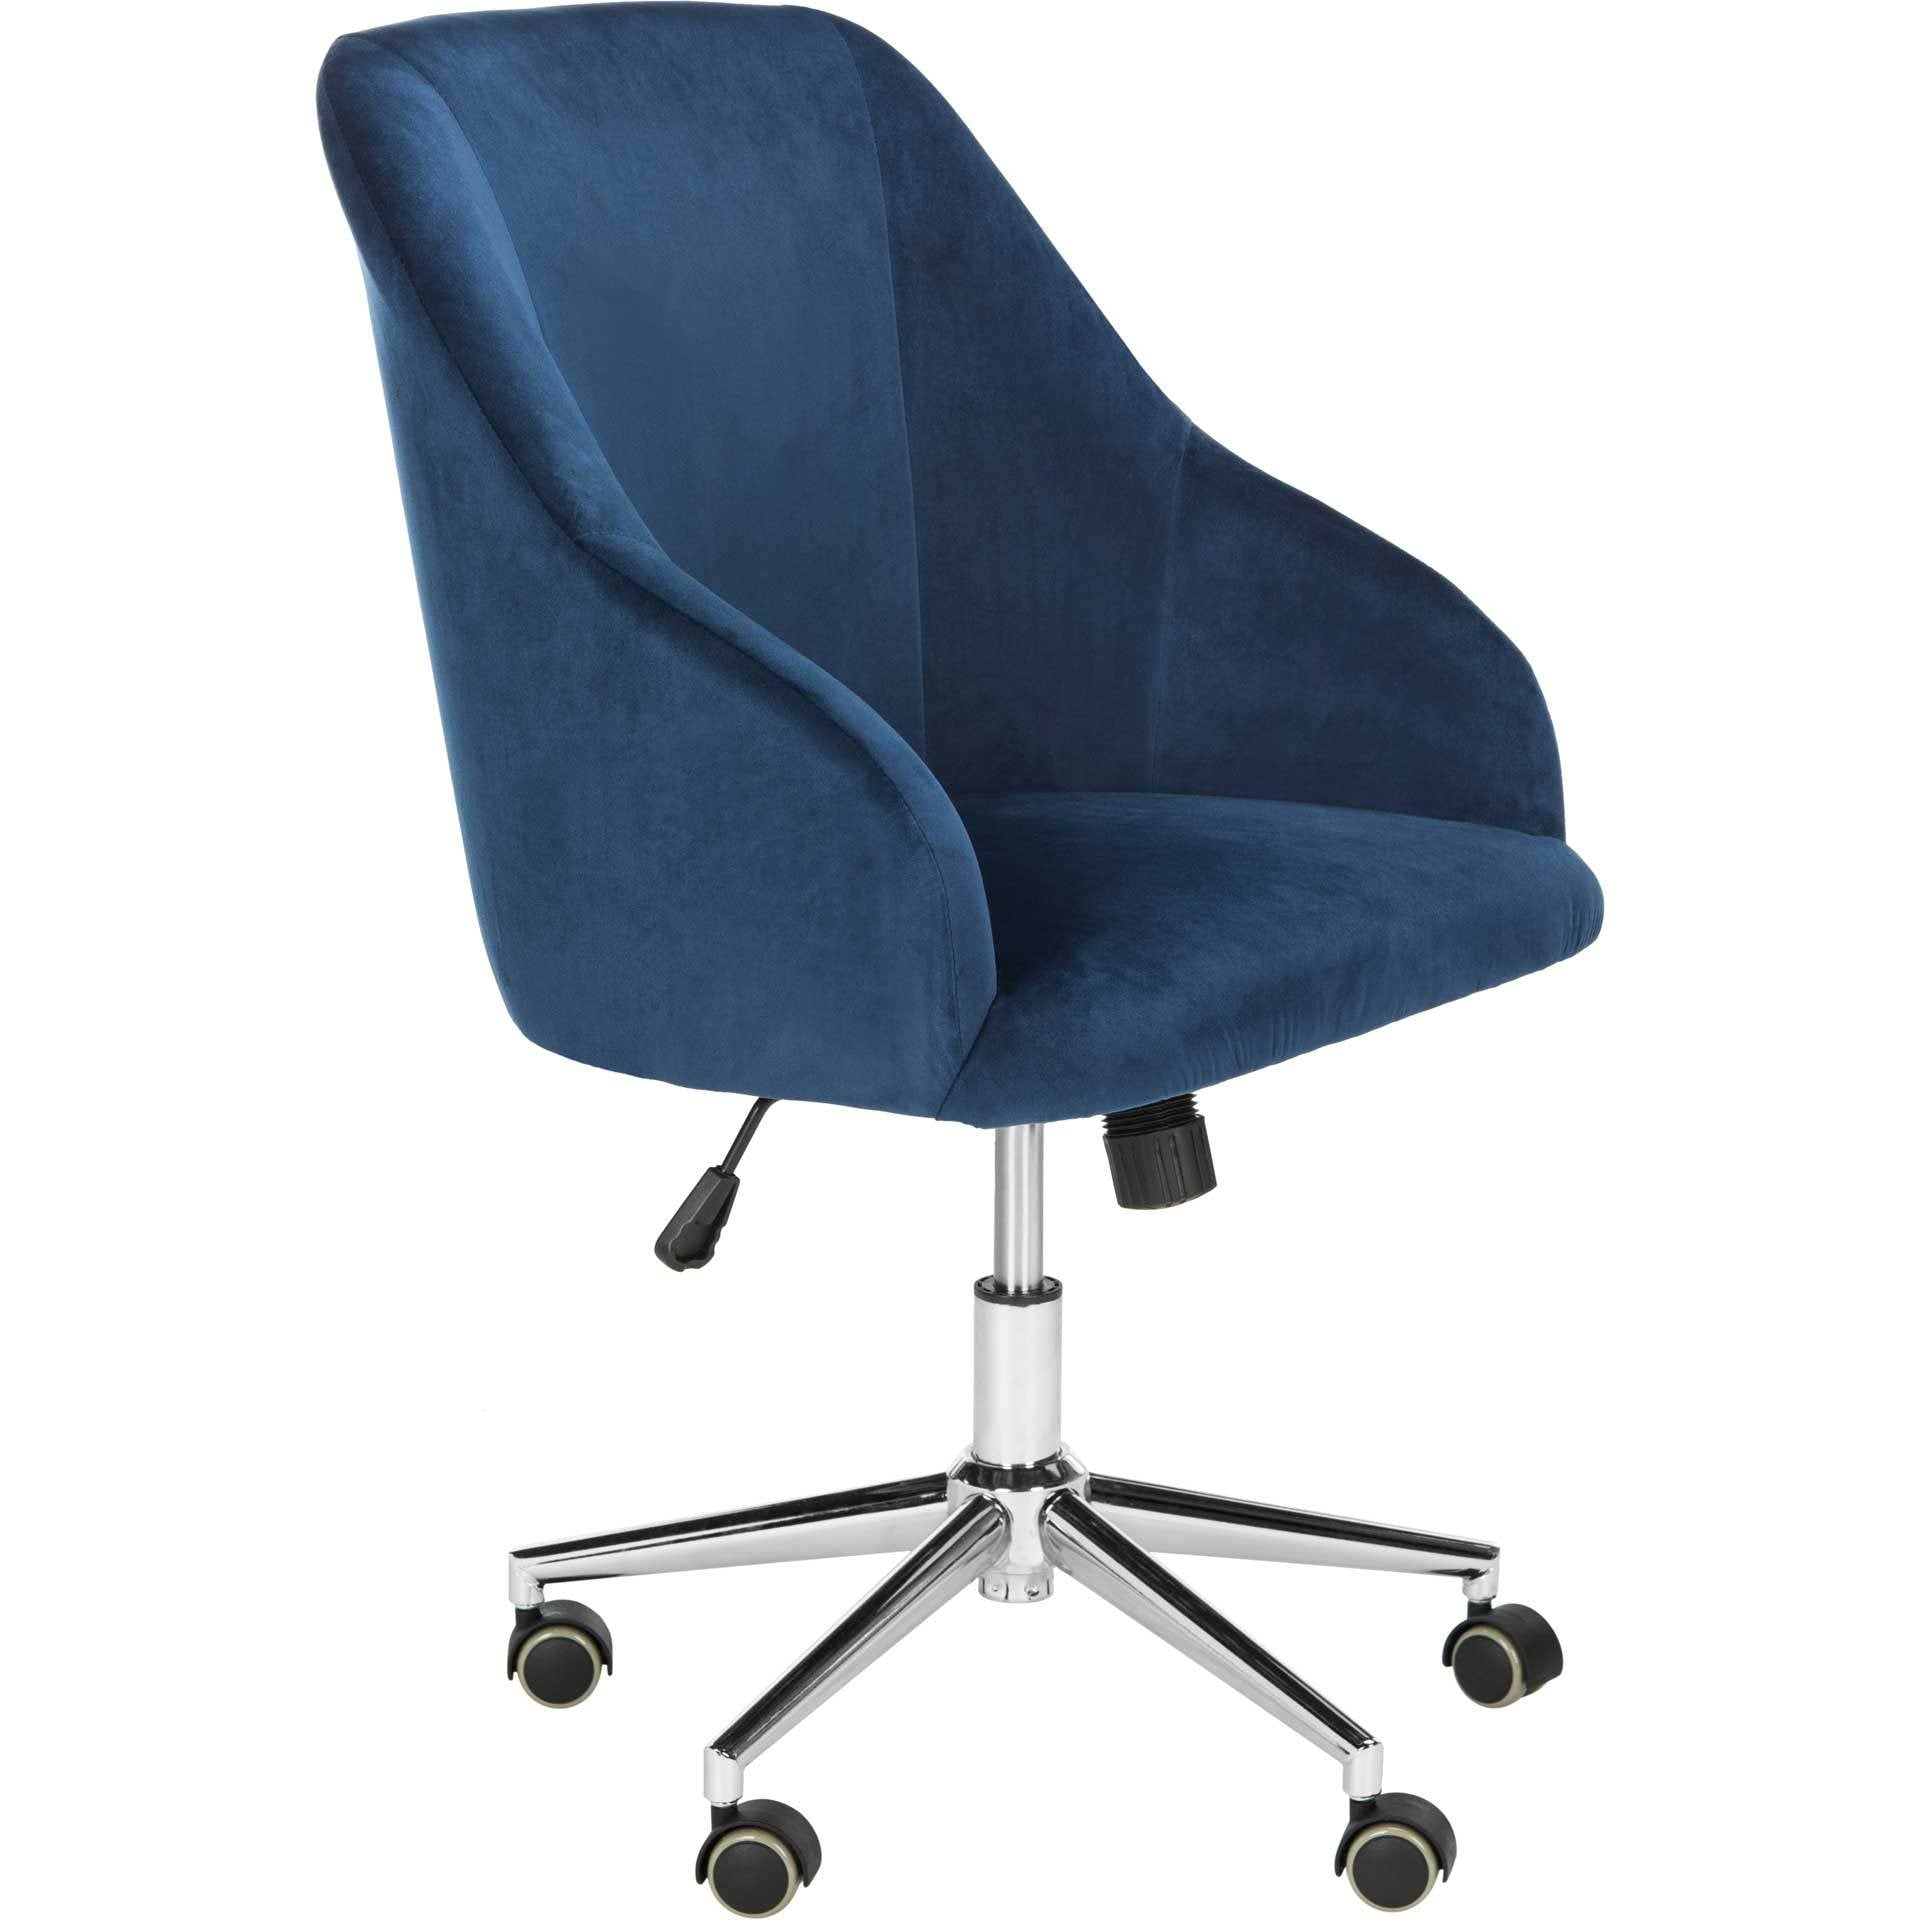 Adele Velvet Chrome Leg Swivel Office Chair